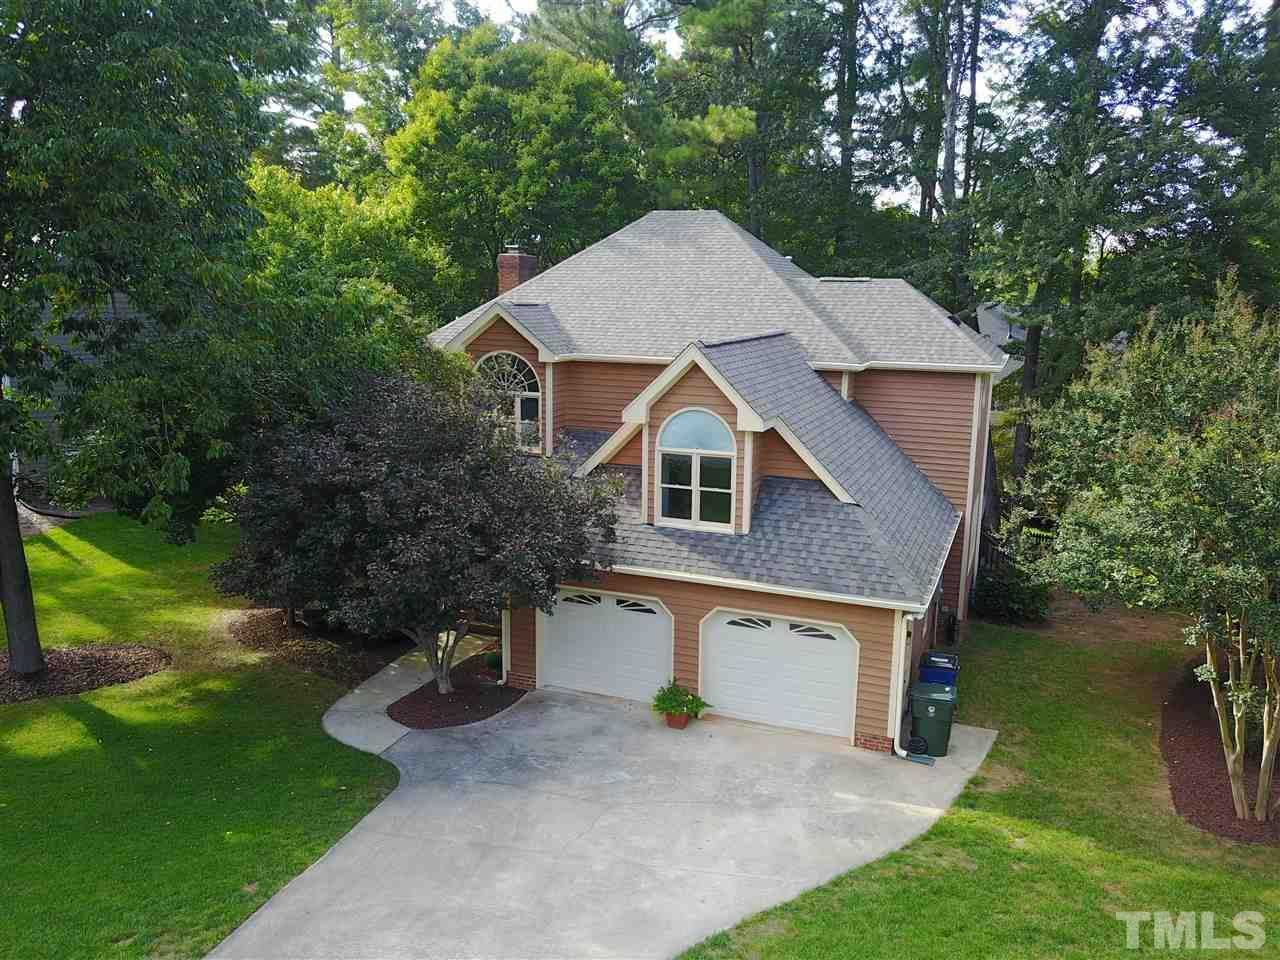 $409,000 - 3Br/3Ba -  for Sale in Stonehenge, Raleigh